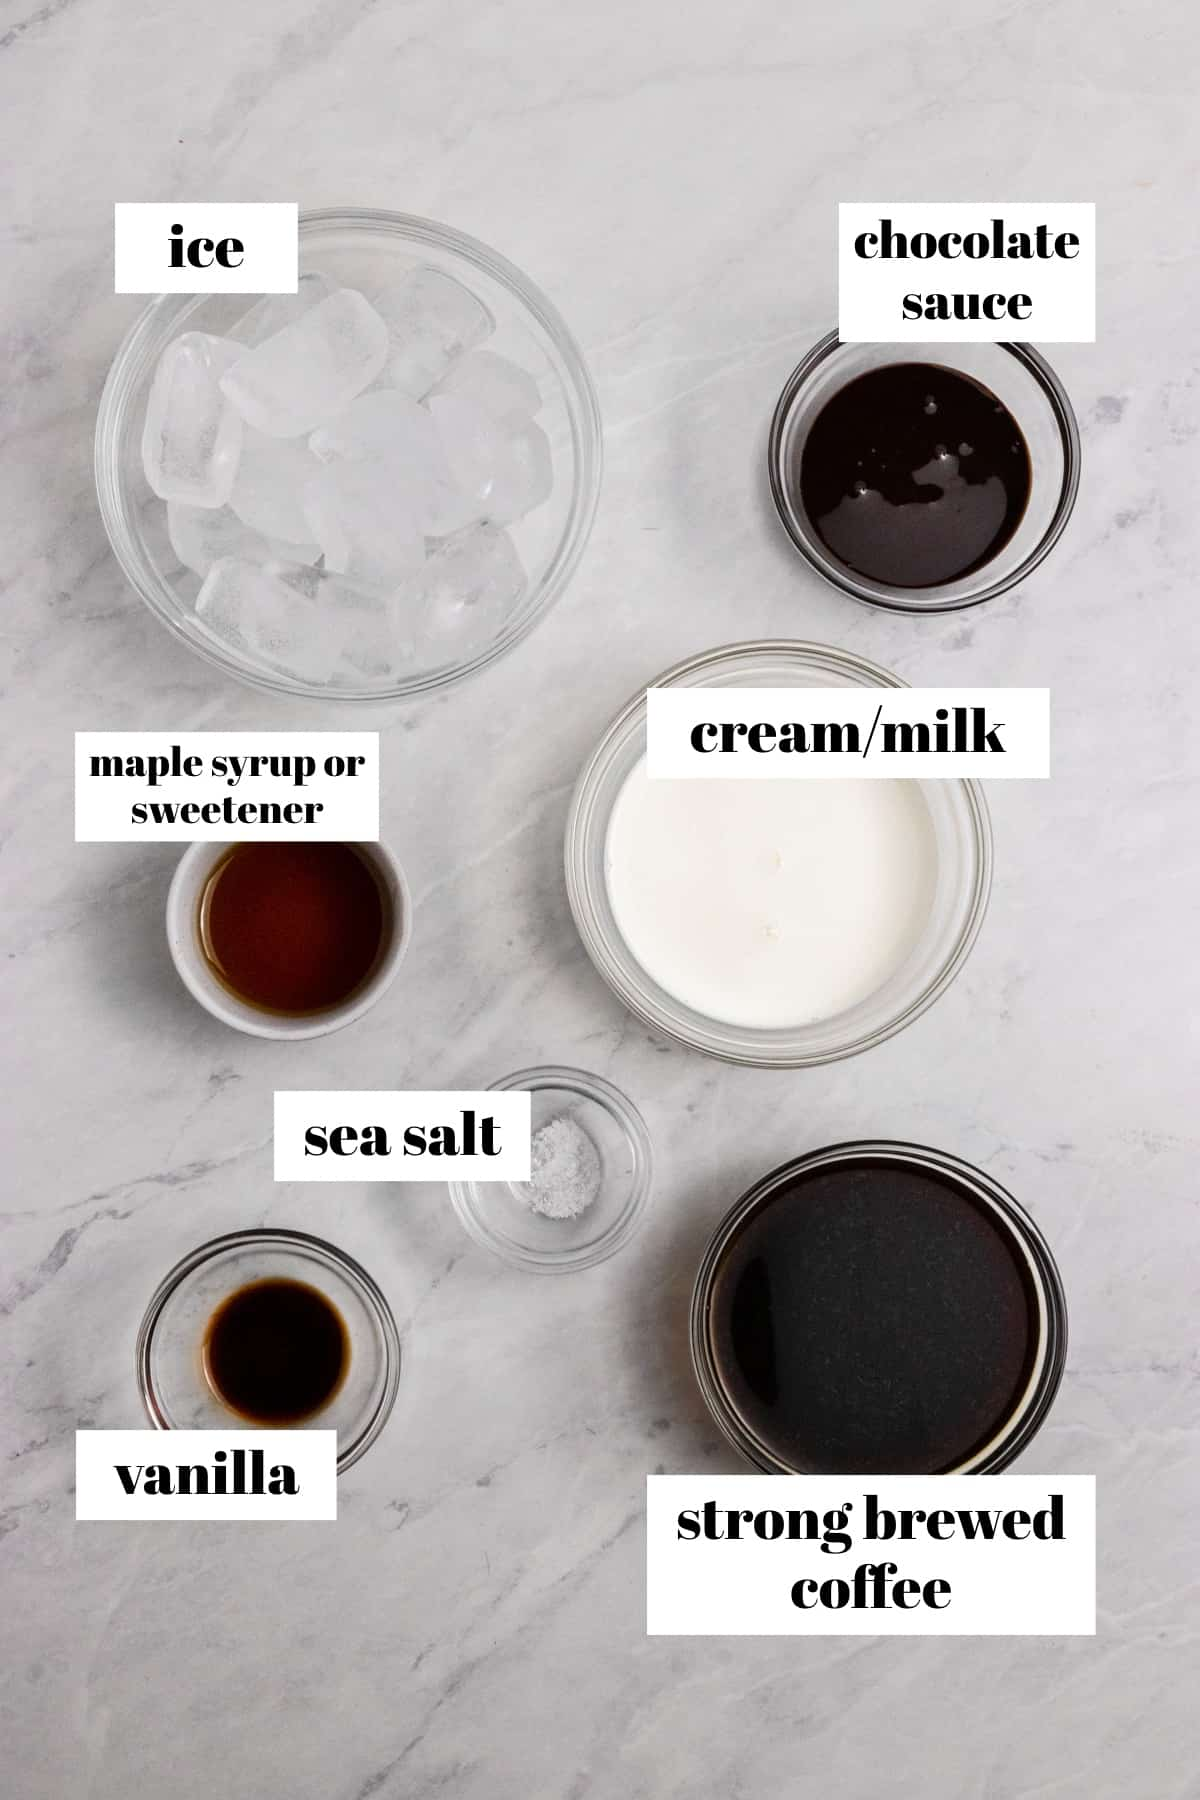 Ice, chocolate, coffee, and other ingredients labeled.